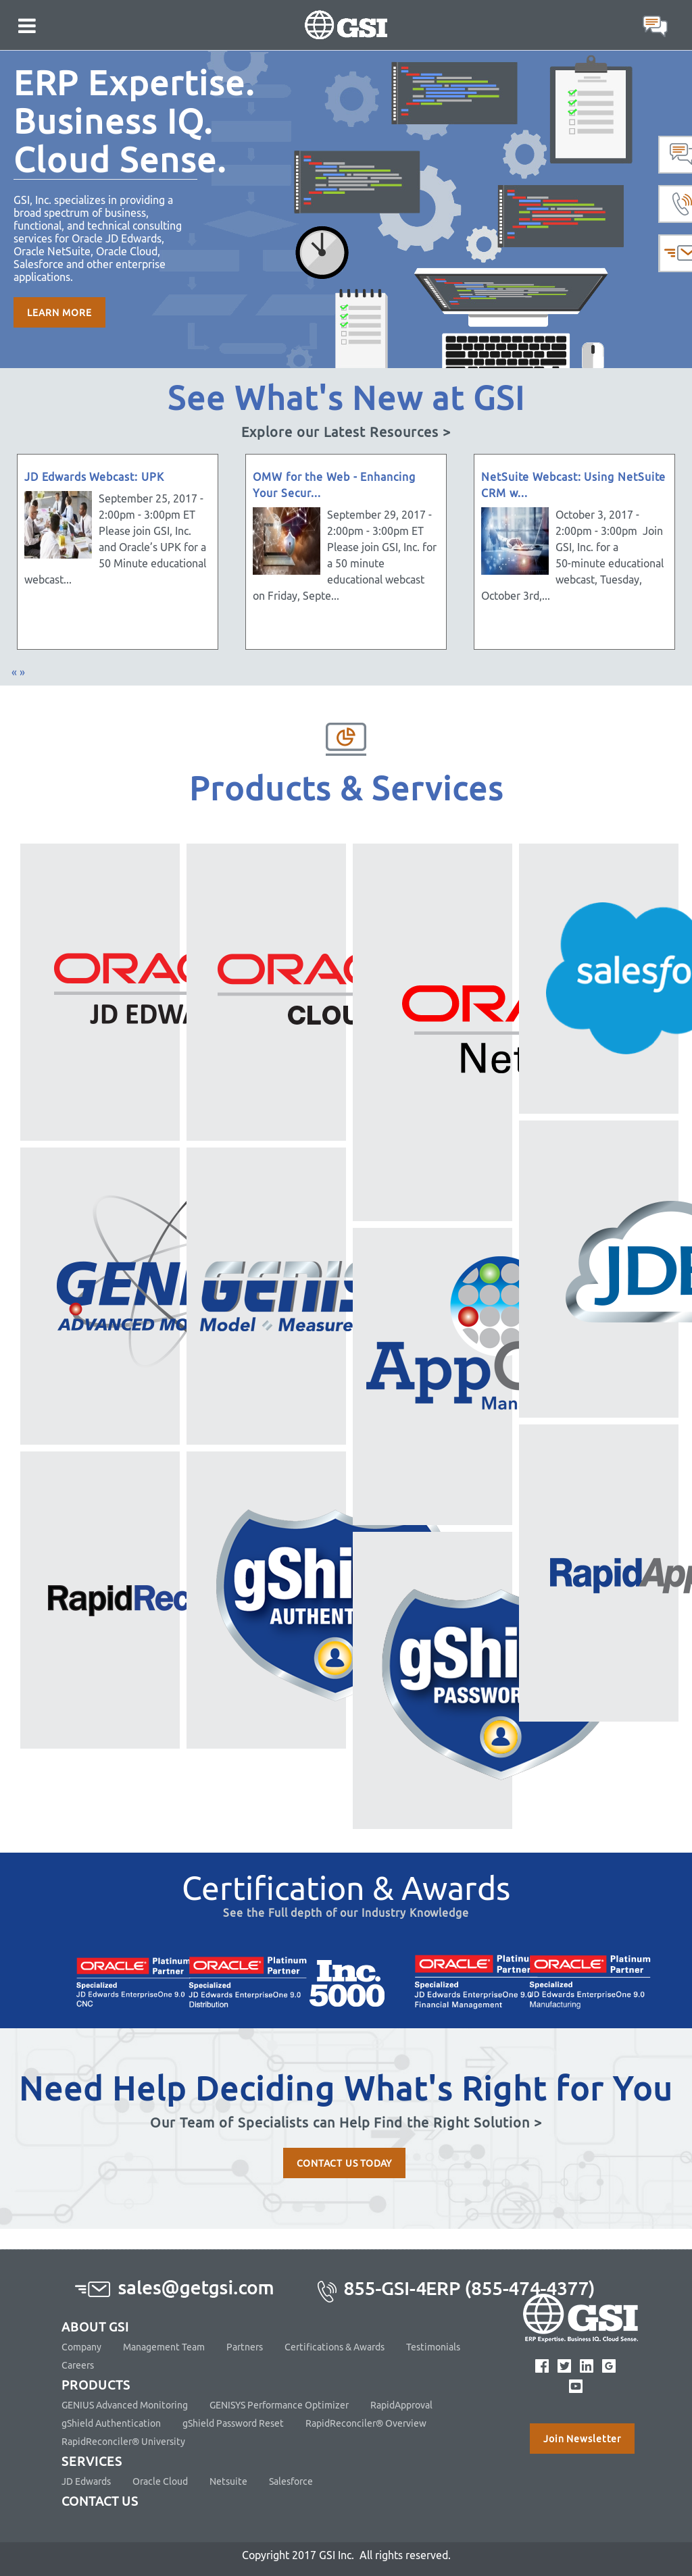 GSI Competitors, Revenue and Employees - Owler Company Profile